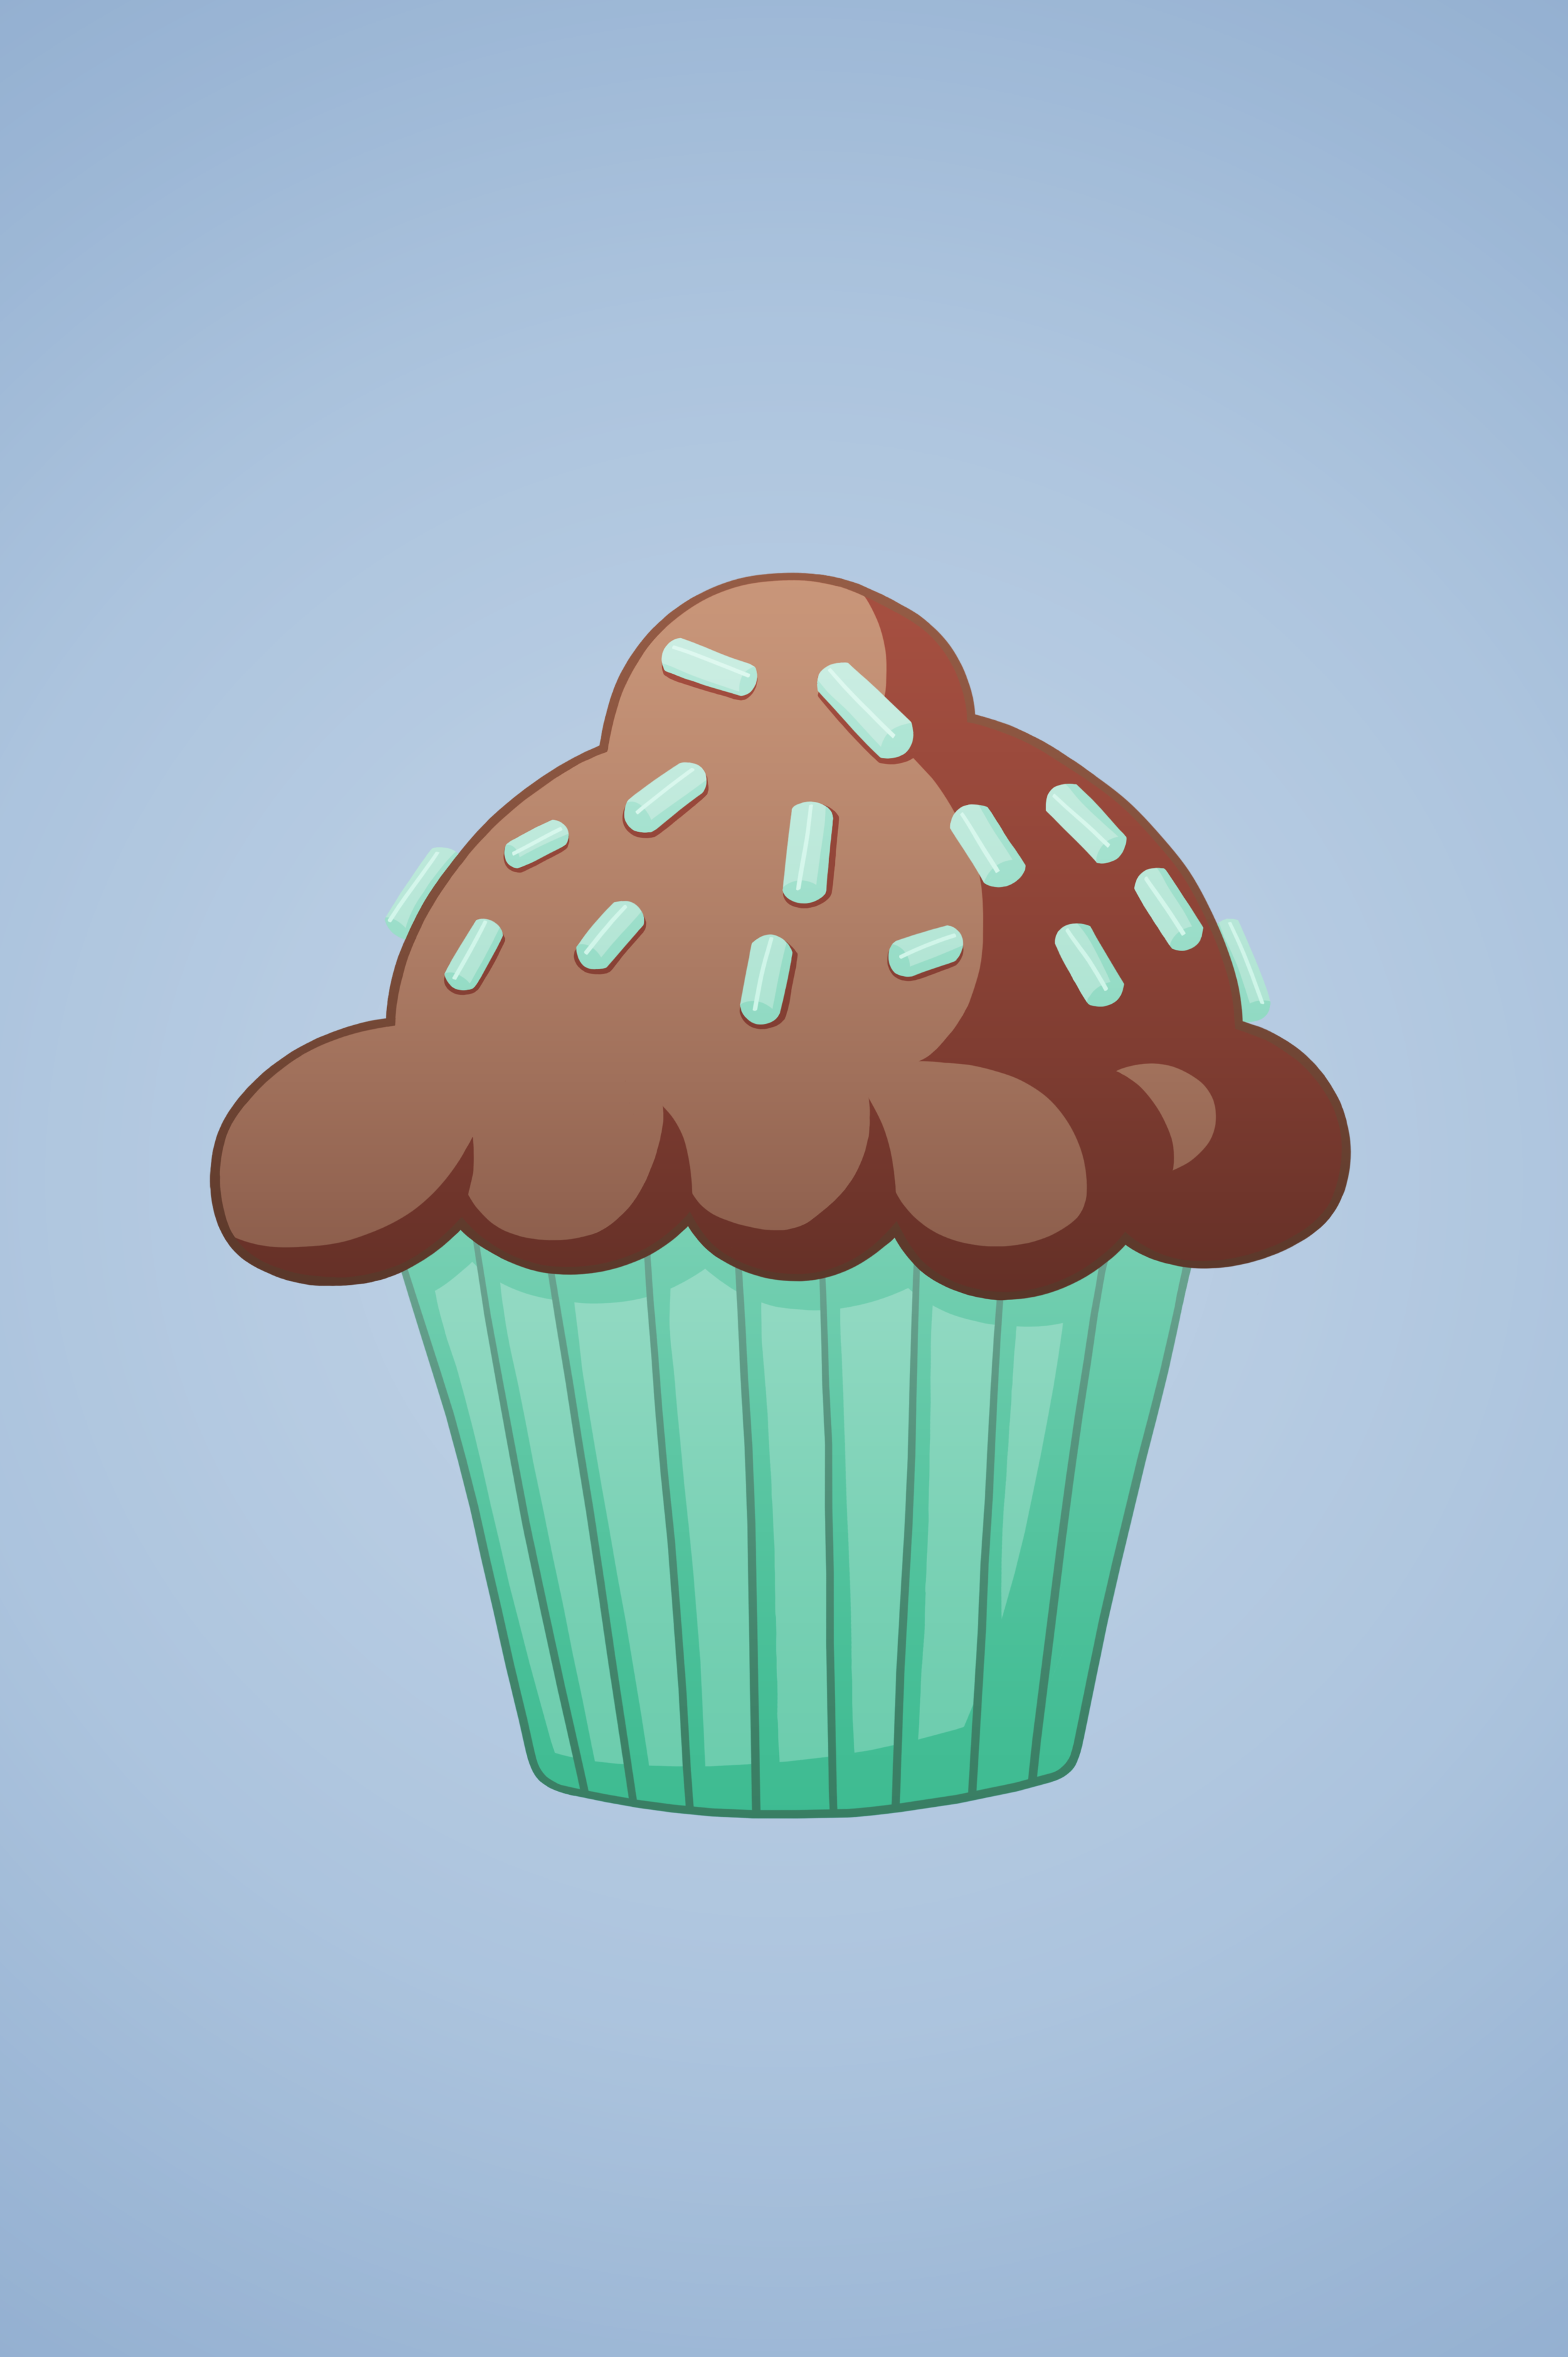 cupcake05Colour.png